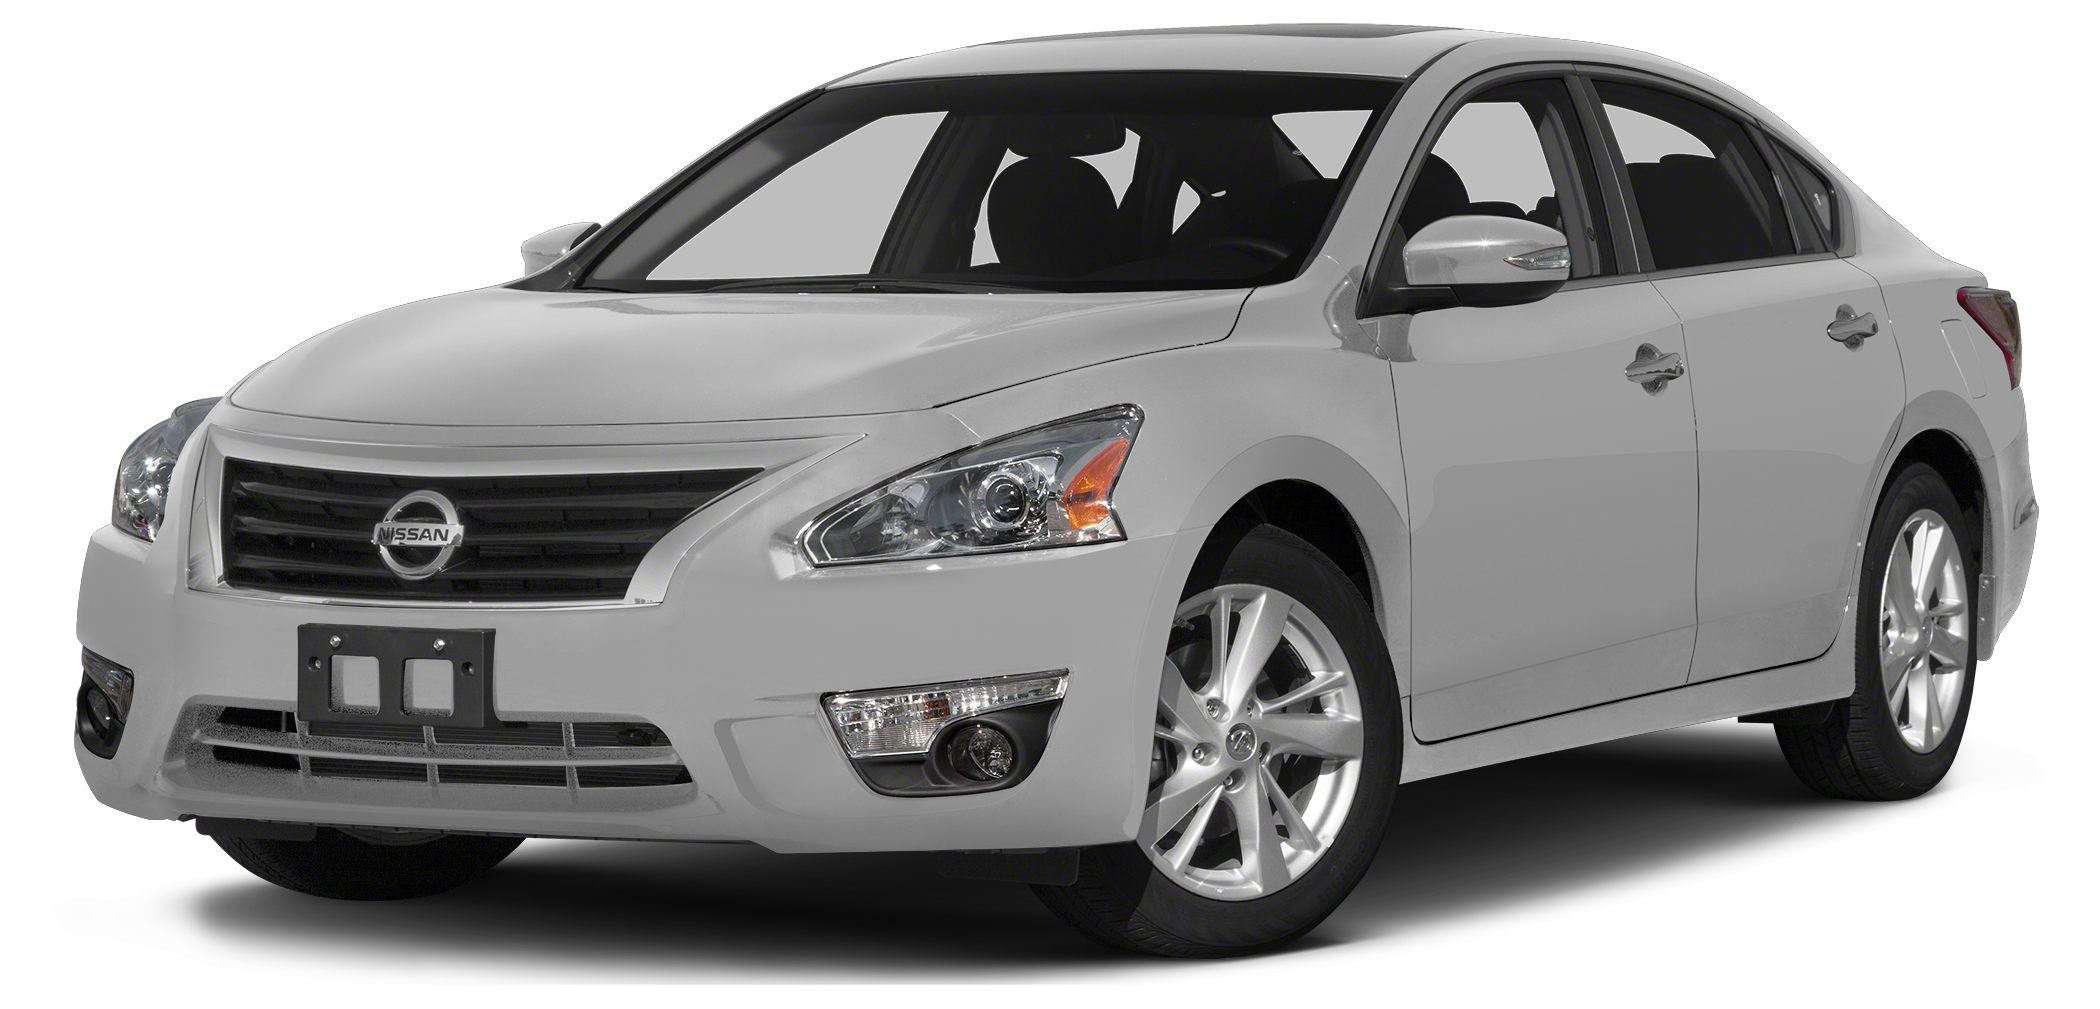 2015 Nissan Altima 25 SL Dealer Certified ONLY 37254 Miles REDUCED FROM 17824 EPA 38 MPG H